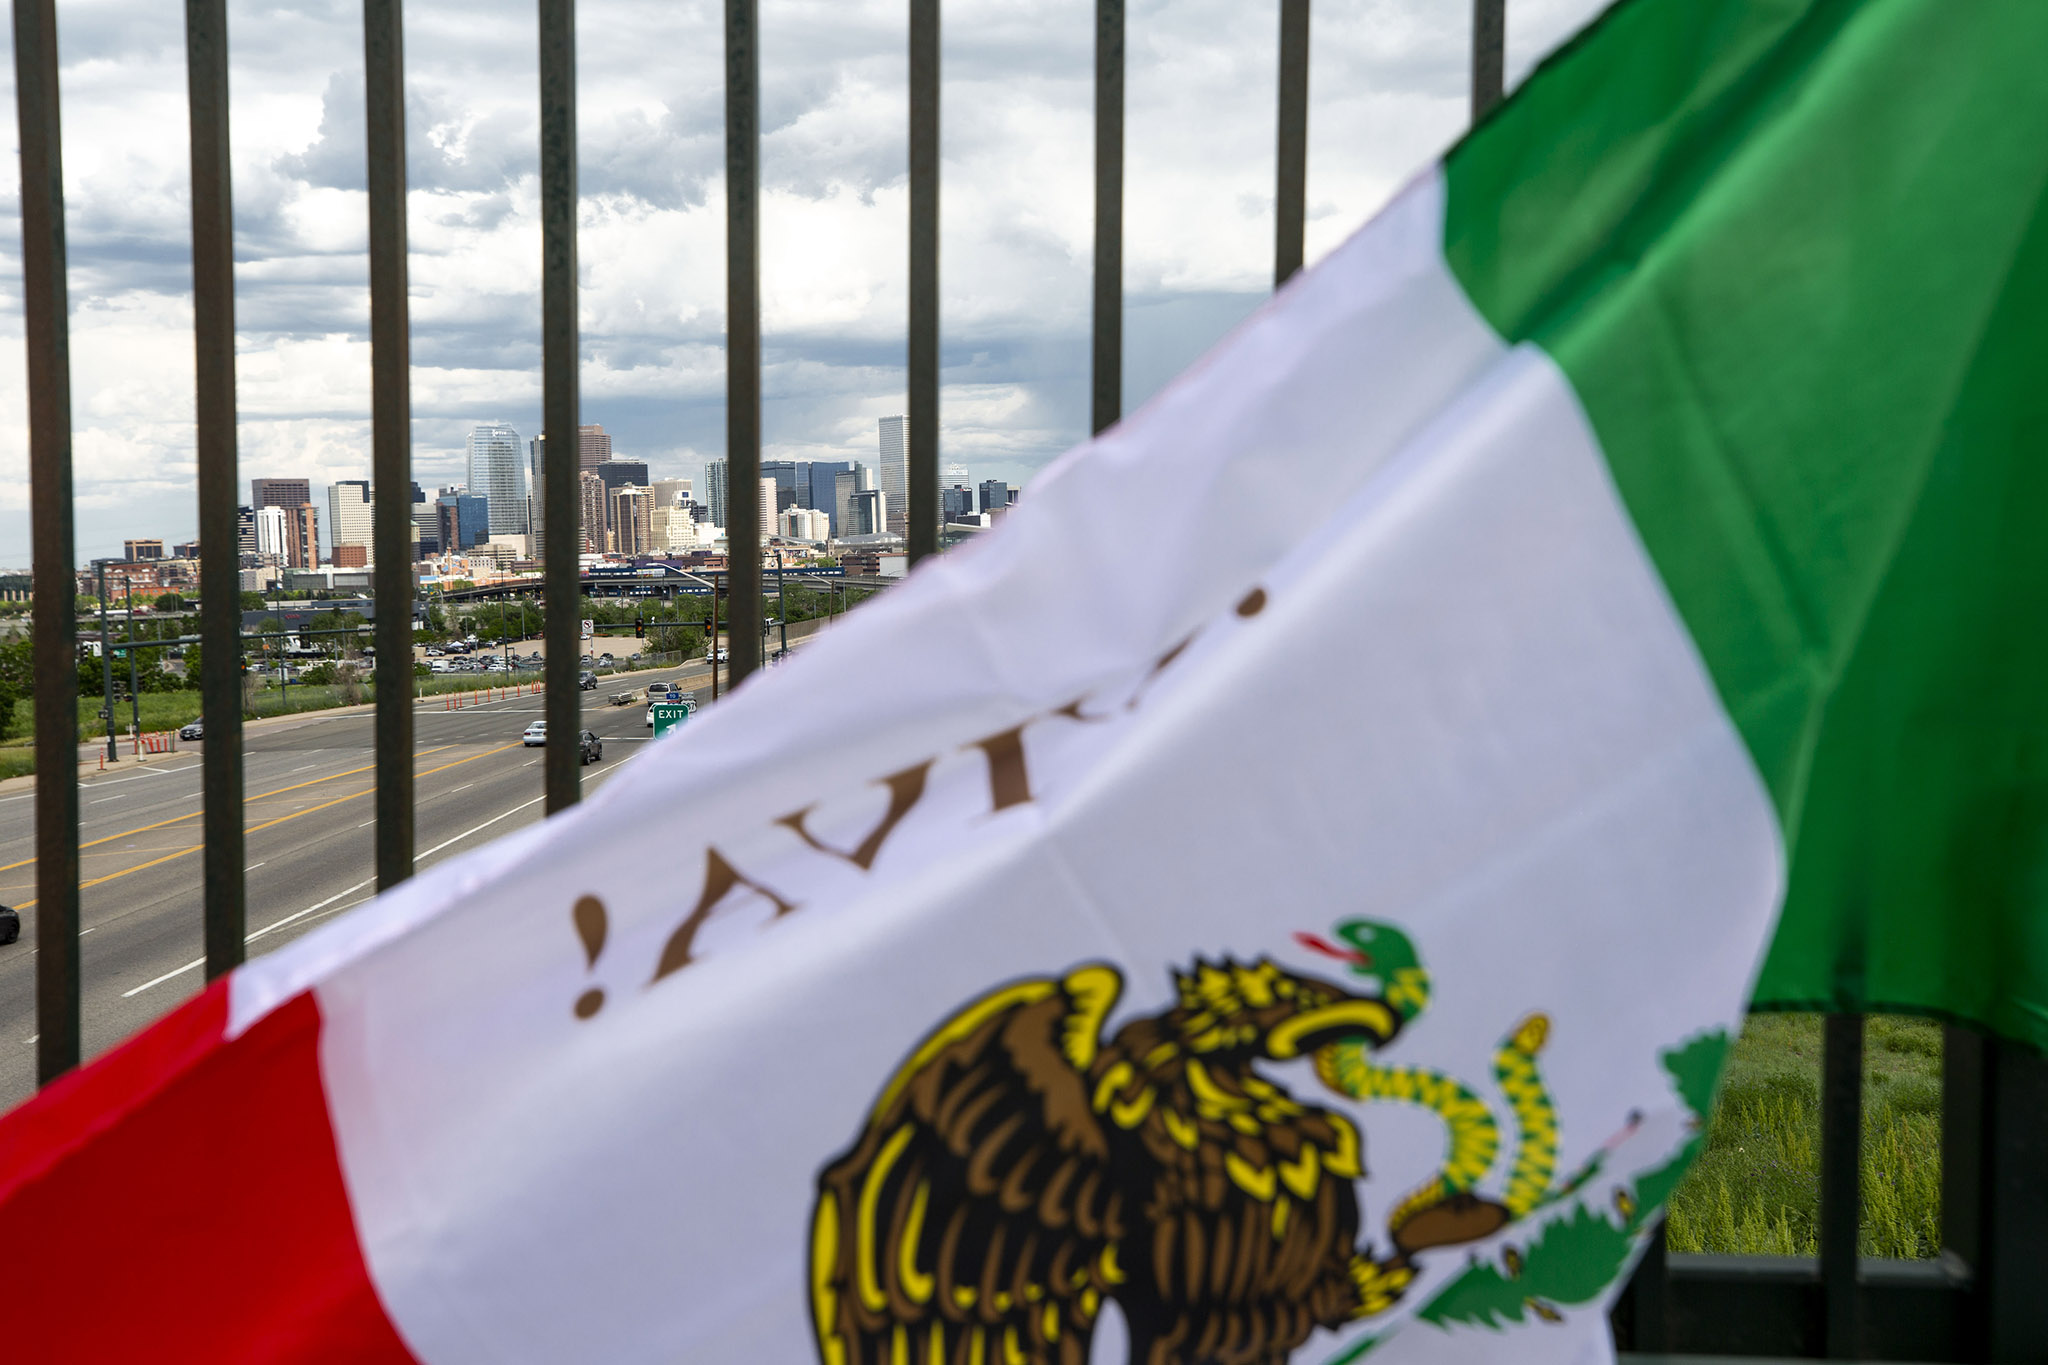 Raul Gomez sells Mexican flags before the U.S. and Mexico national teams face off in the CONCACAF Nations League finals at Mile High Stadium. June 6, 2021.